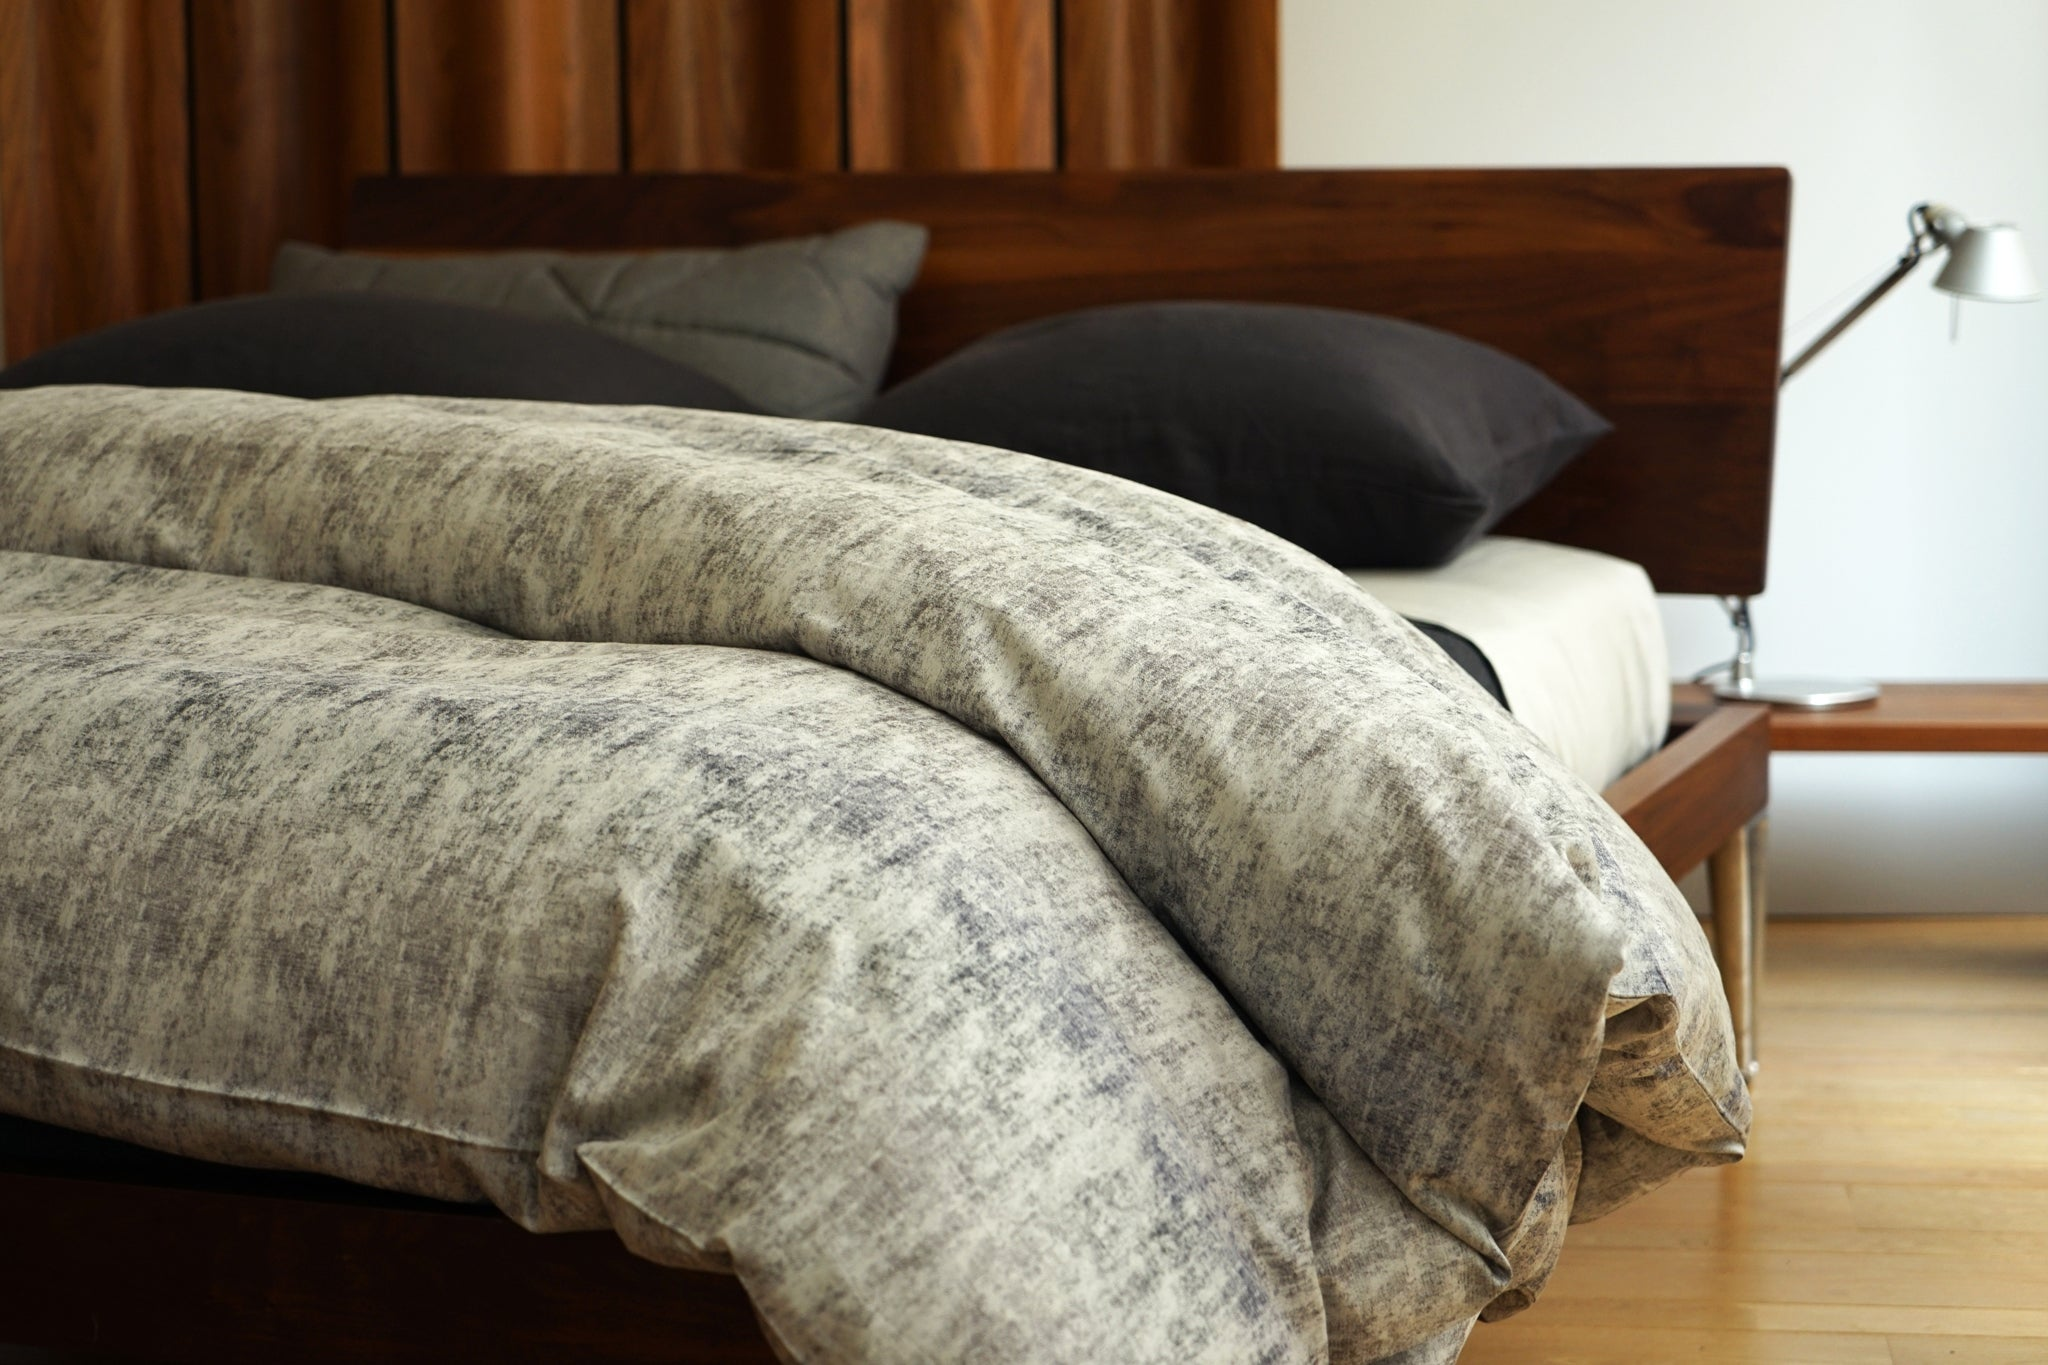 LEO bedding collection